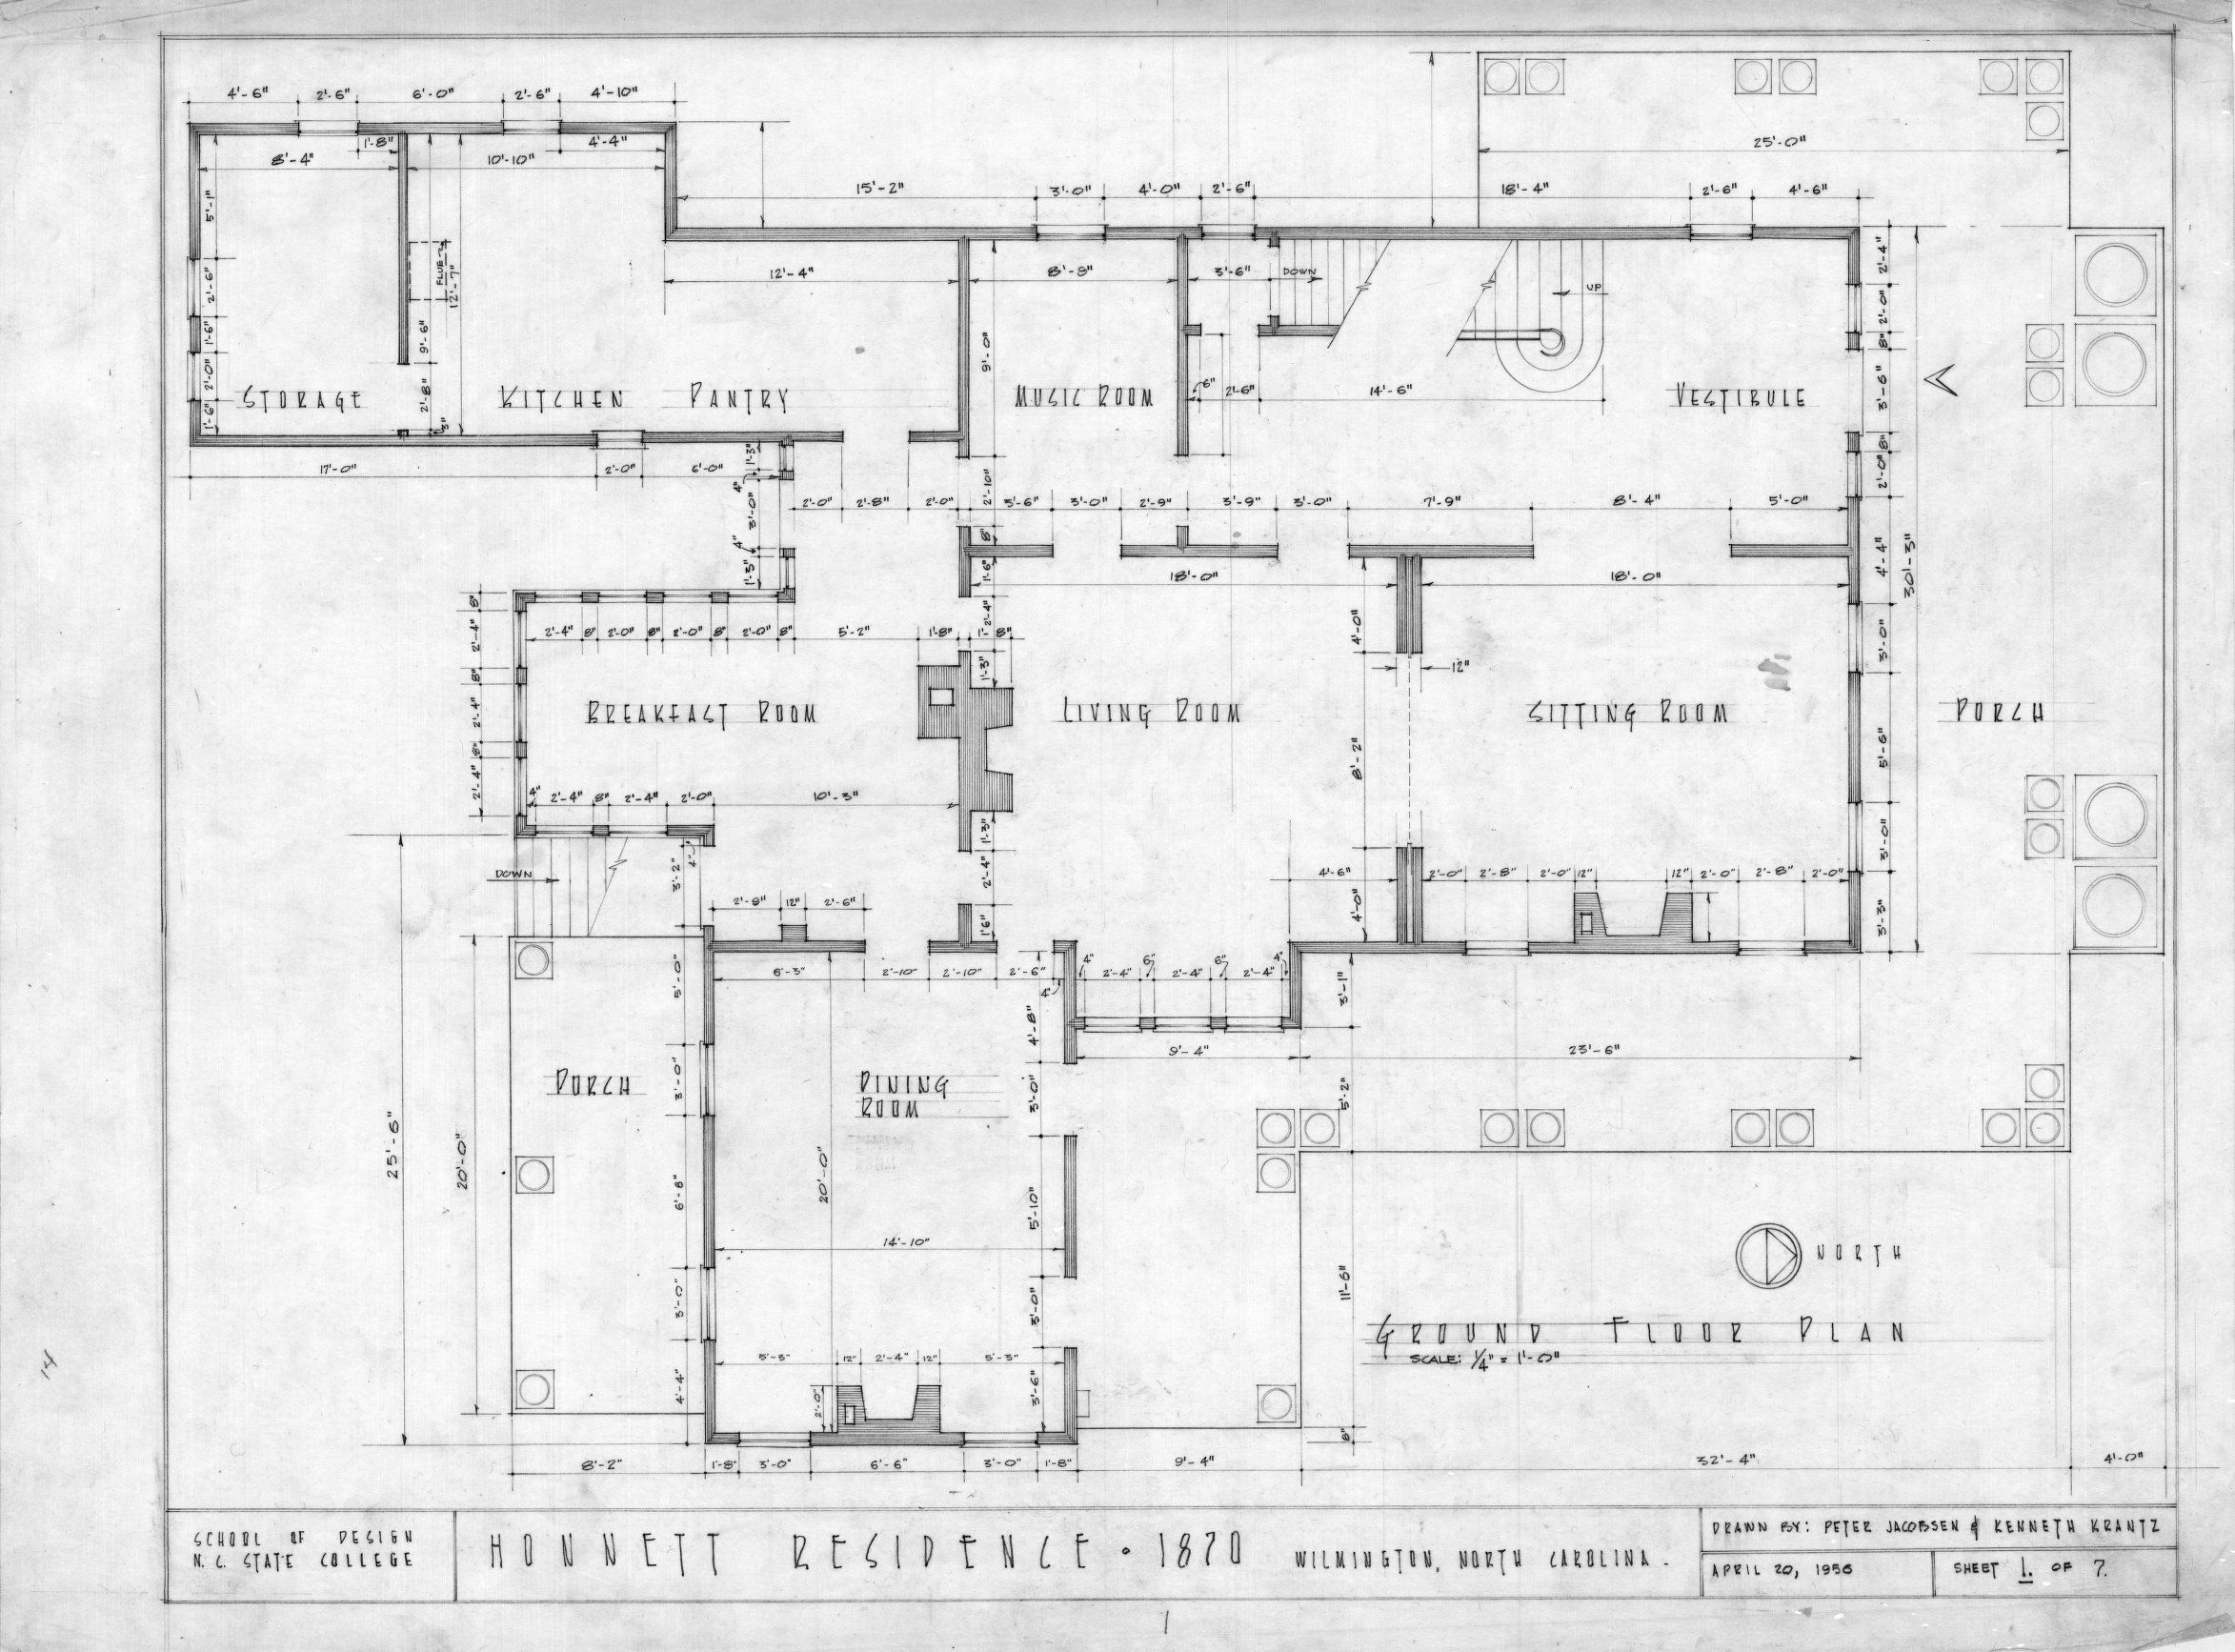 historic italianate floor plans  Google Search  khaneye